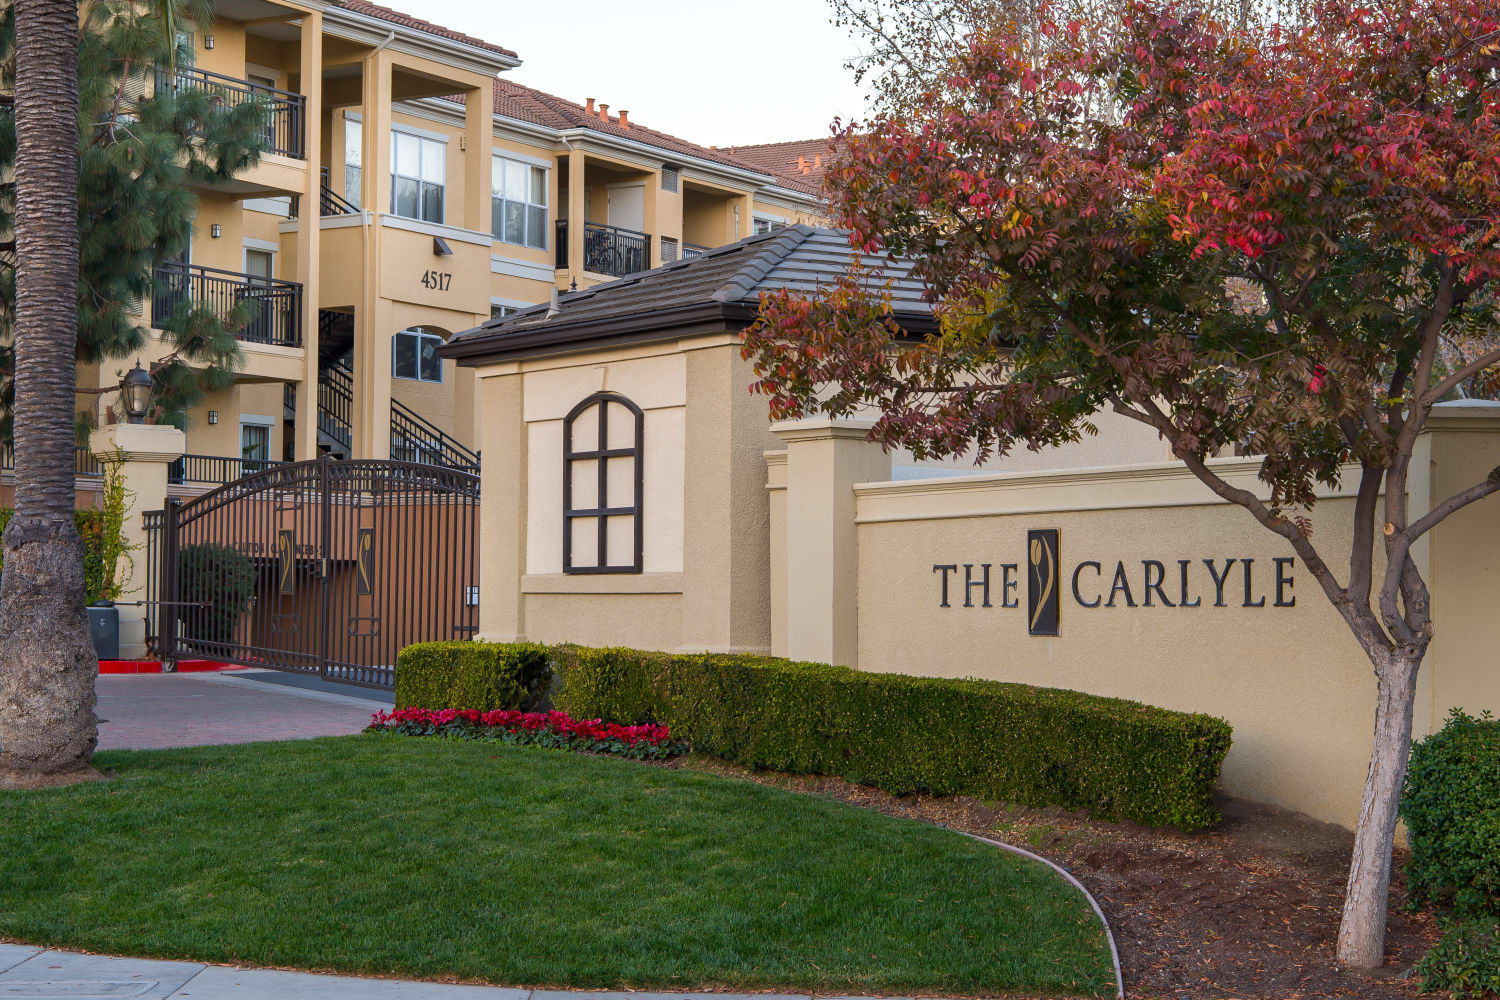 Well-kept grounds at The Carlyle in Santa Clara, California